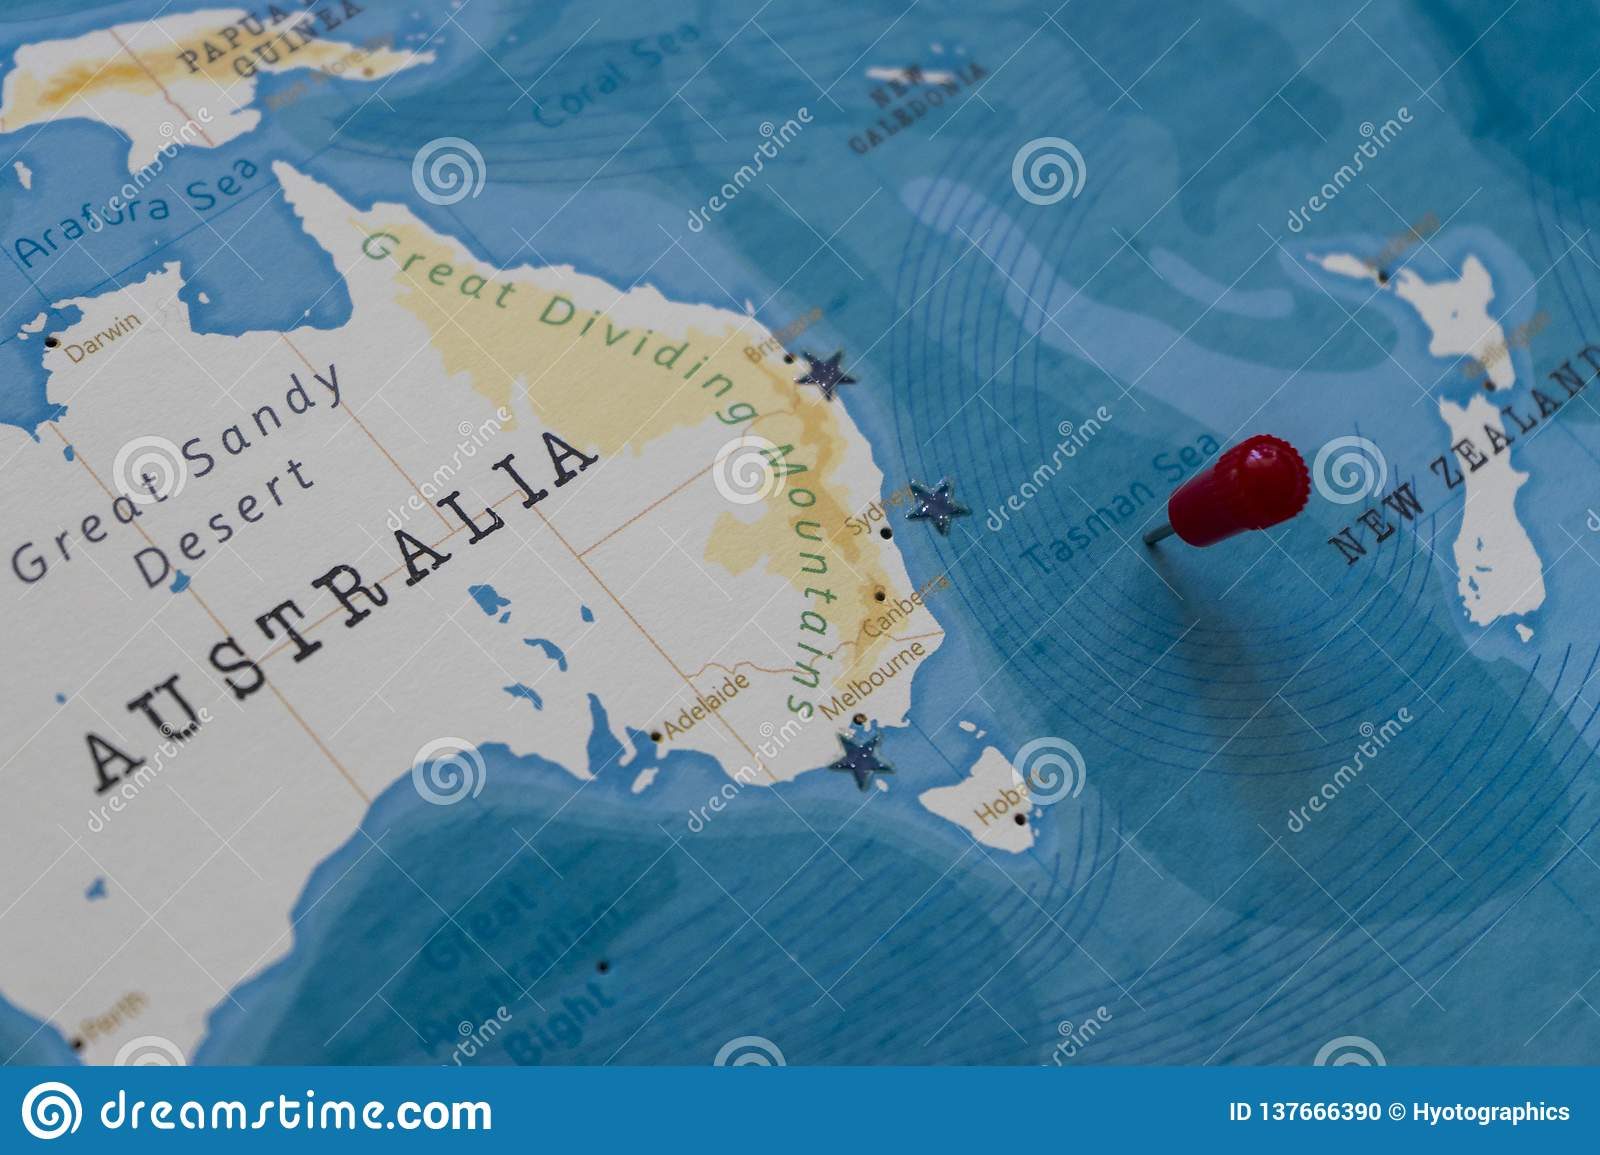 Image of: A Pin On Tasman Sea In The World Map Stock Photo Image Of Communication Border 137666390